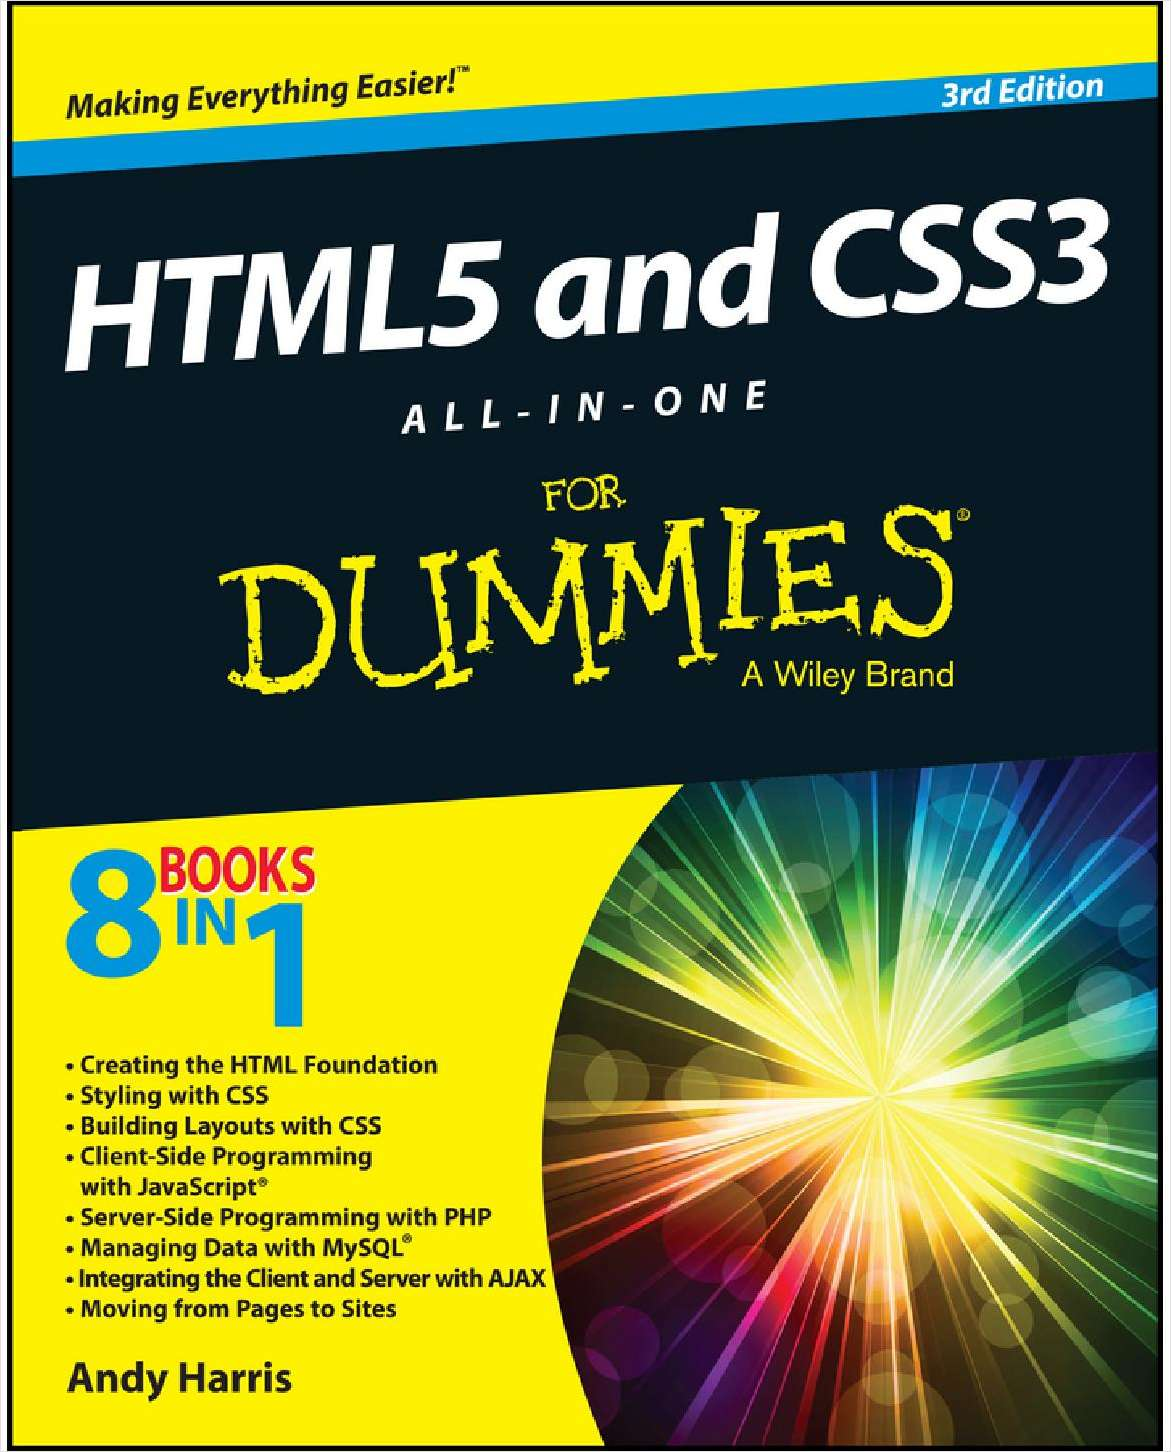 HTML5 and CSS3 All-in-One For Dummies, 3rd Edition--Free Sample Chapters